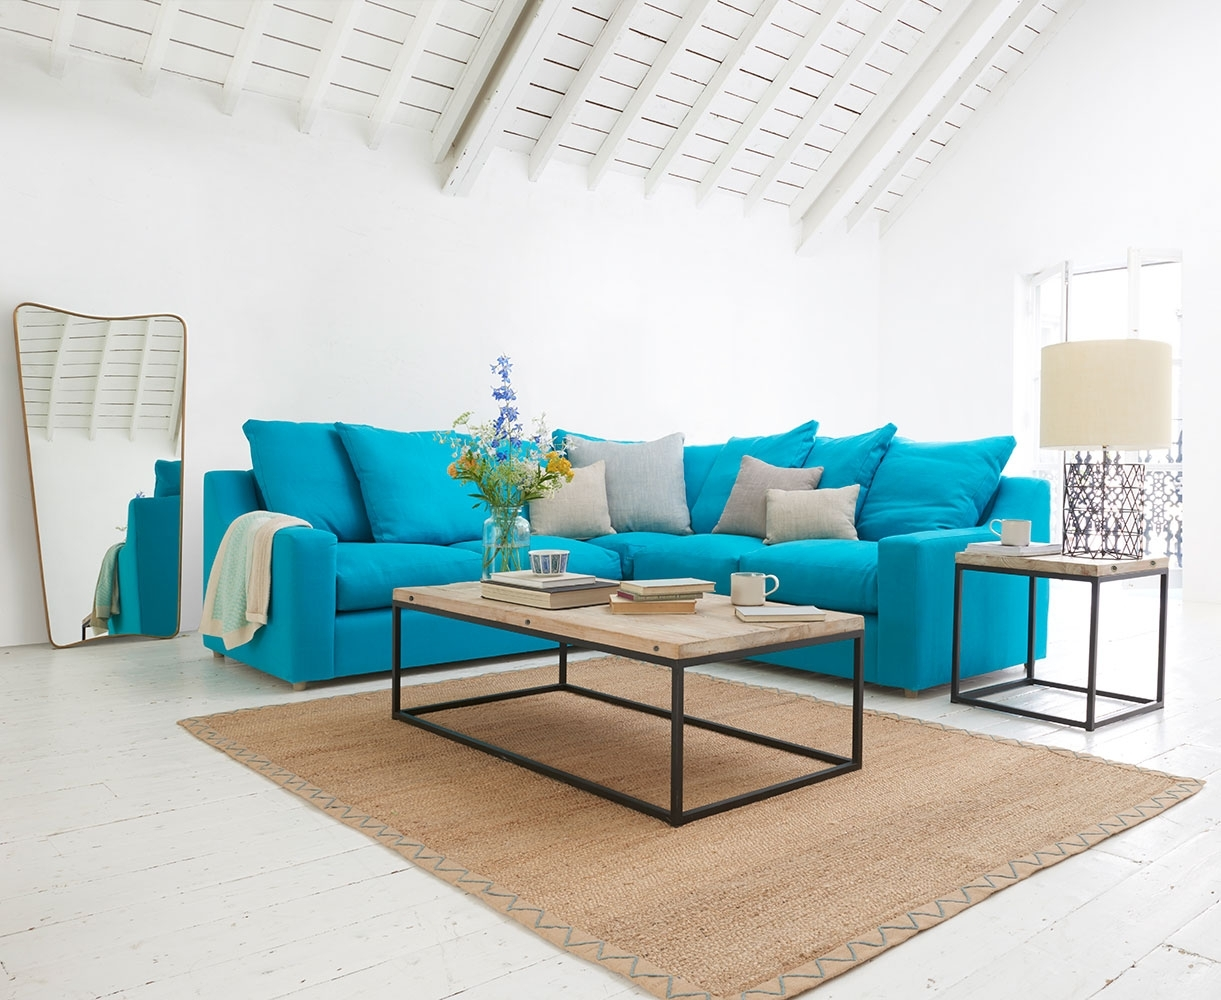 Sofas Made In Blighty | Cloud Corner | Loaf With Regard To Turquoise Sofas (Image 8 of 10)